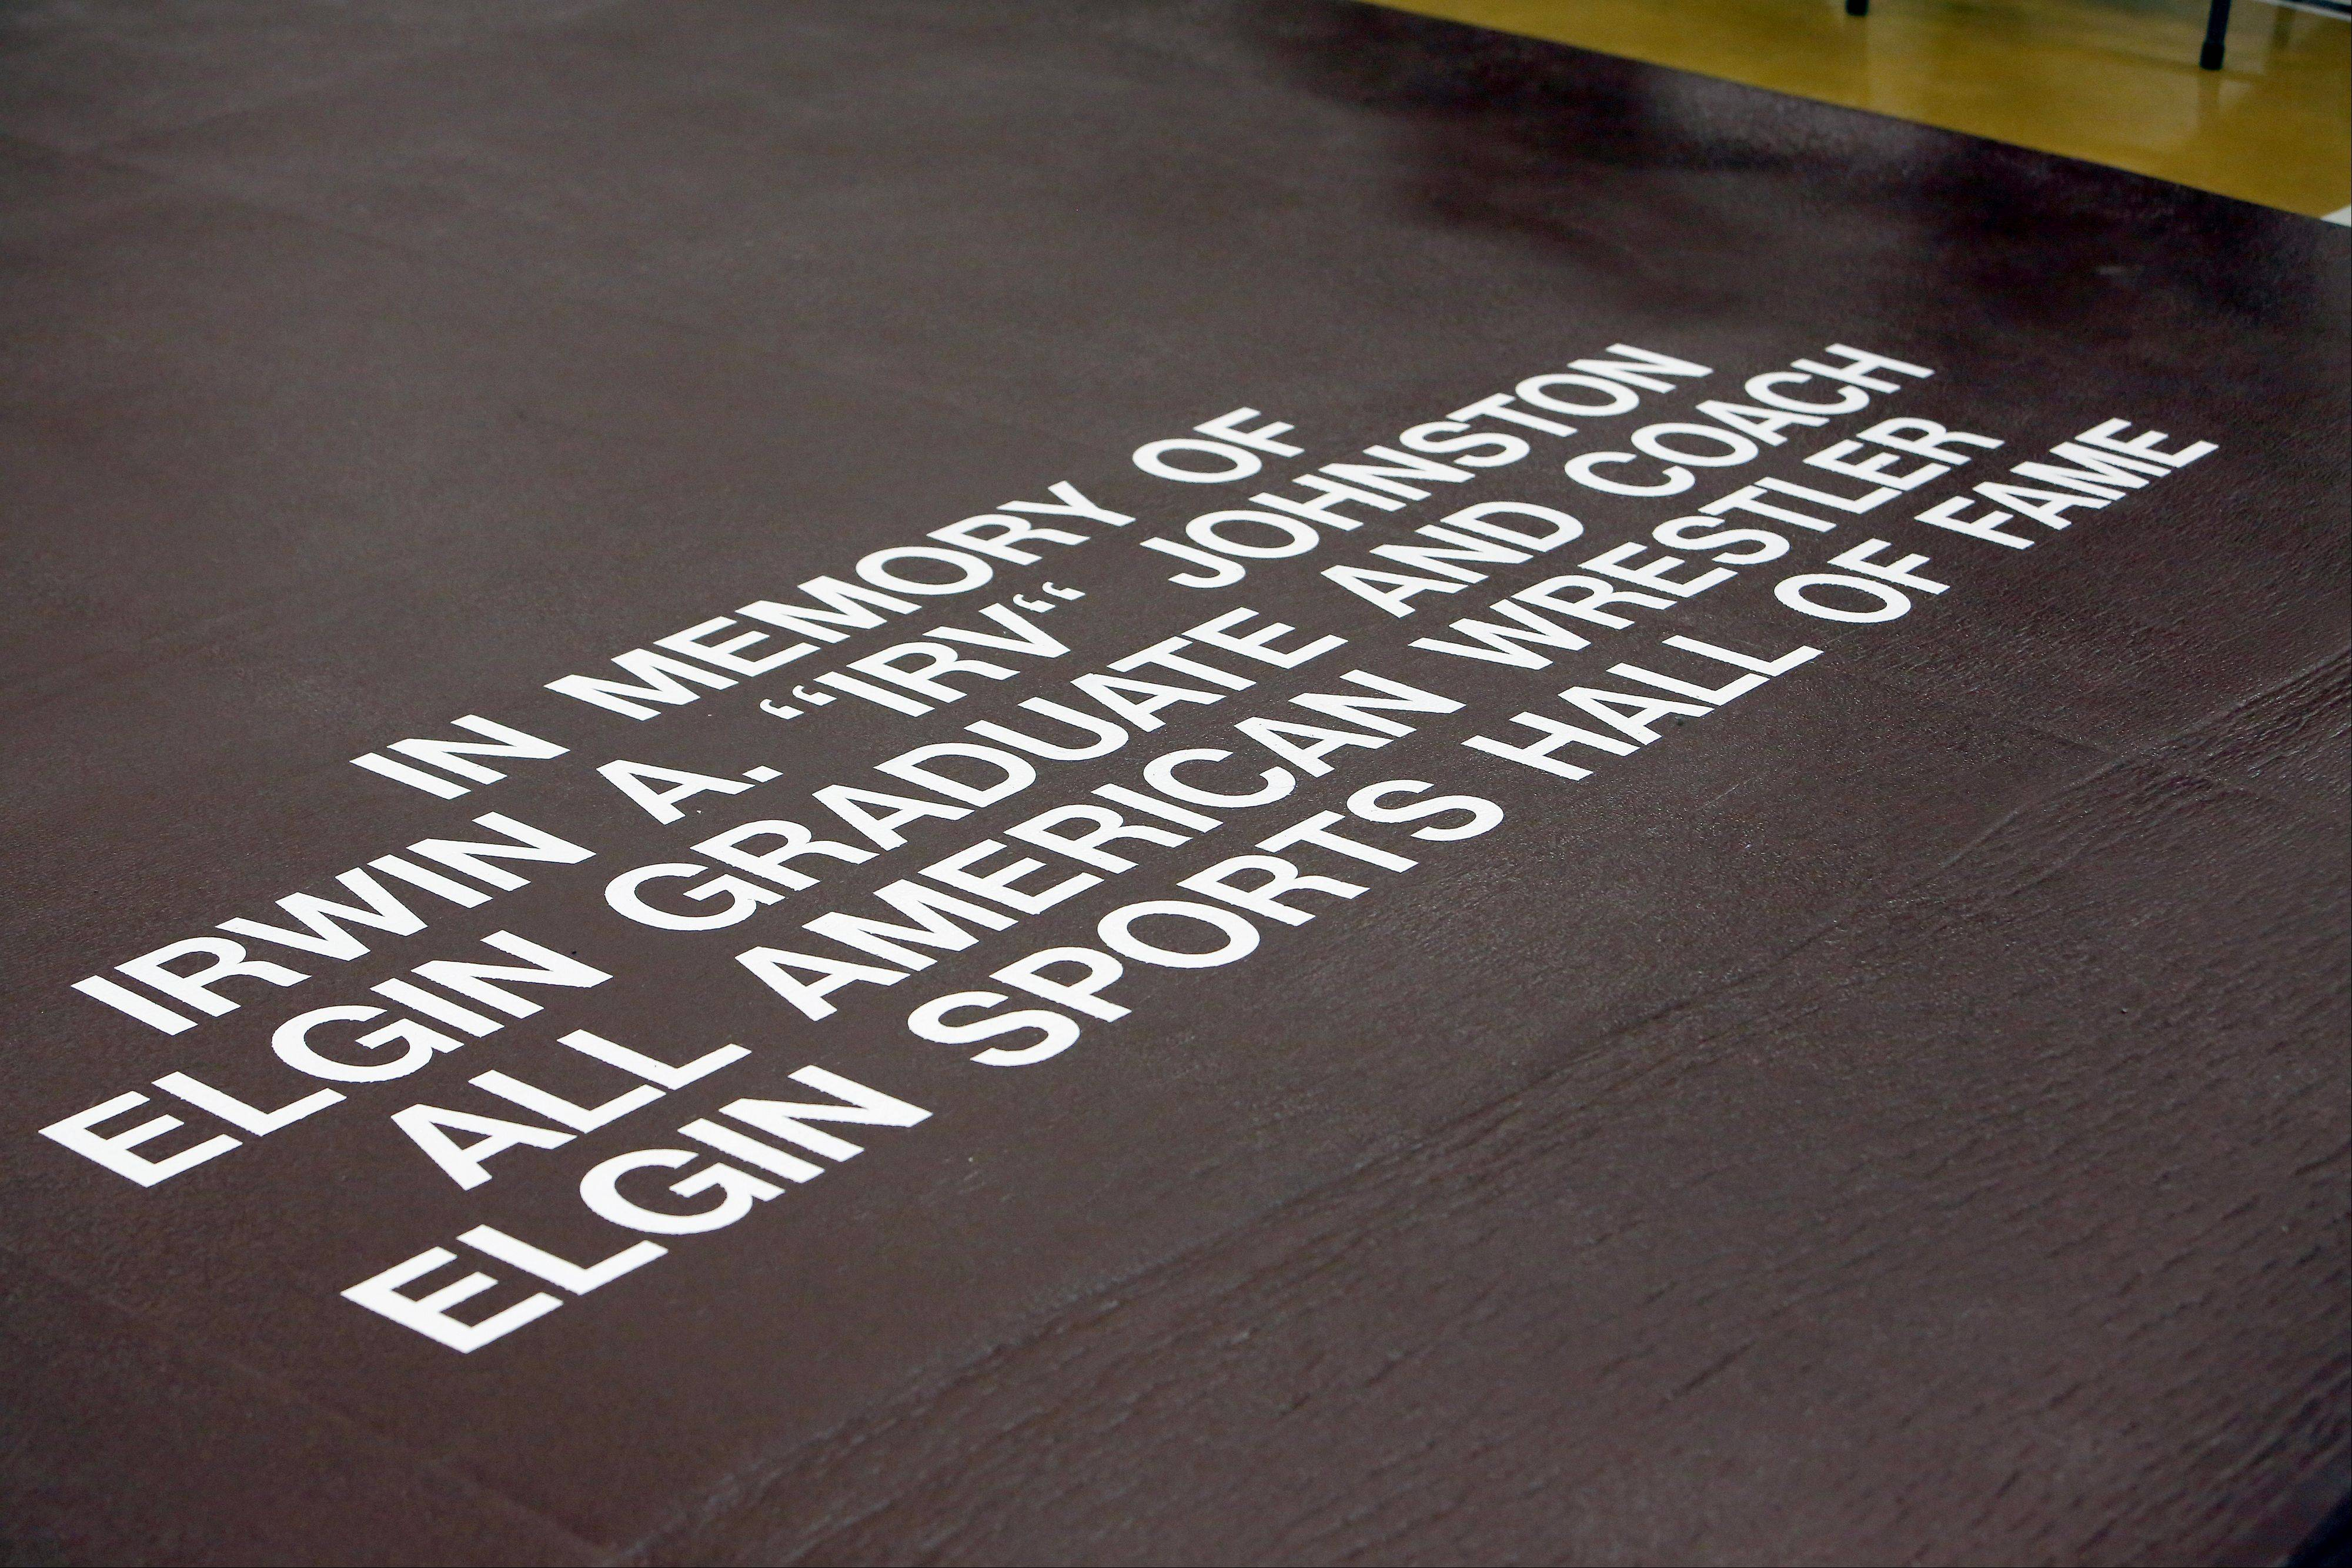 The first new wrestling mat in 18 years at Elgin High School was dedicated to past coach Irv Johnston during the 10th anniversary Remembrance match Friday at Elgin High School against Bartlett.